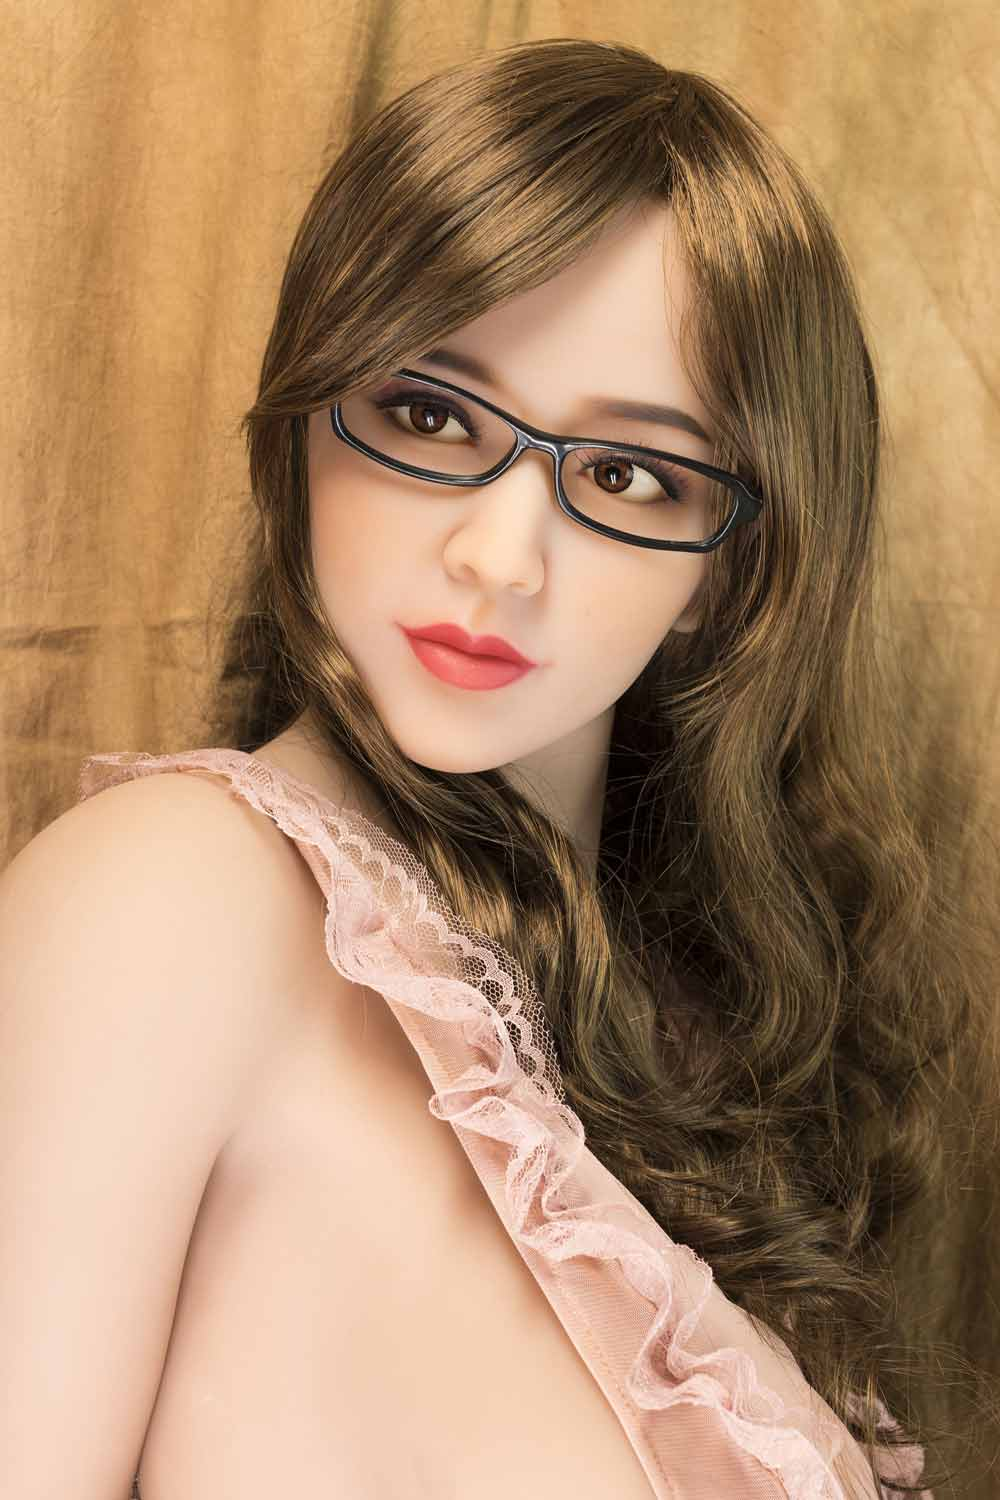 Big breasted sex doll with glasses